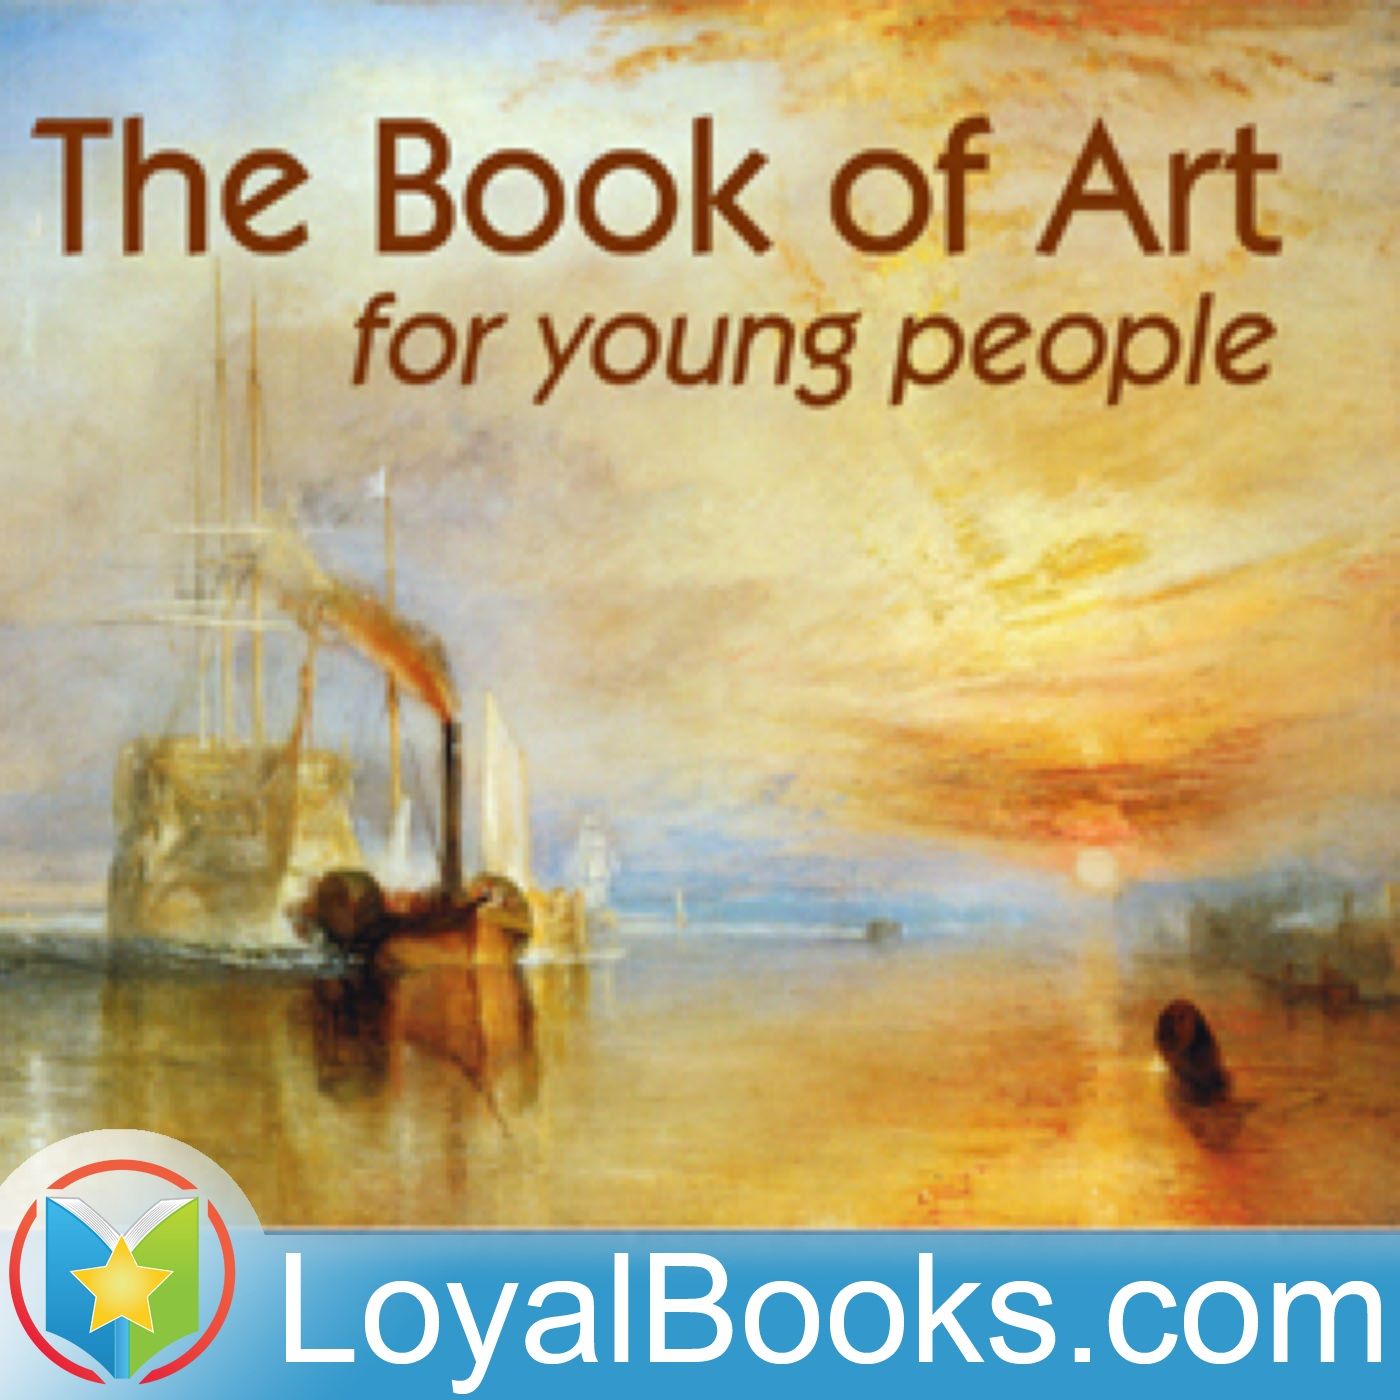 <![CDATA[The Book of Art for Young People by Agnes Ethel Conway]]>